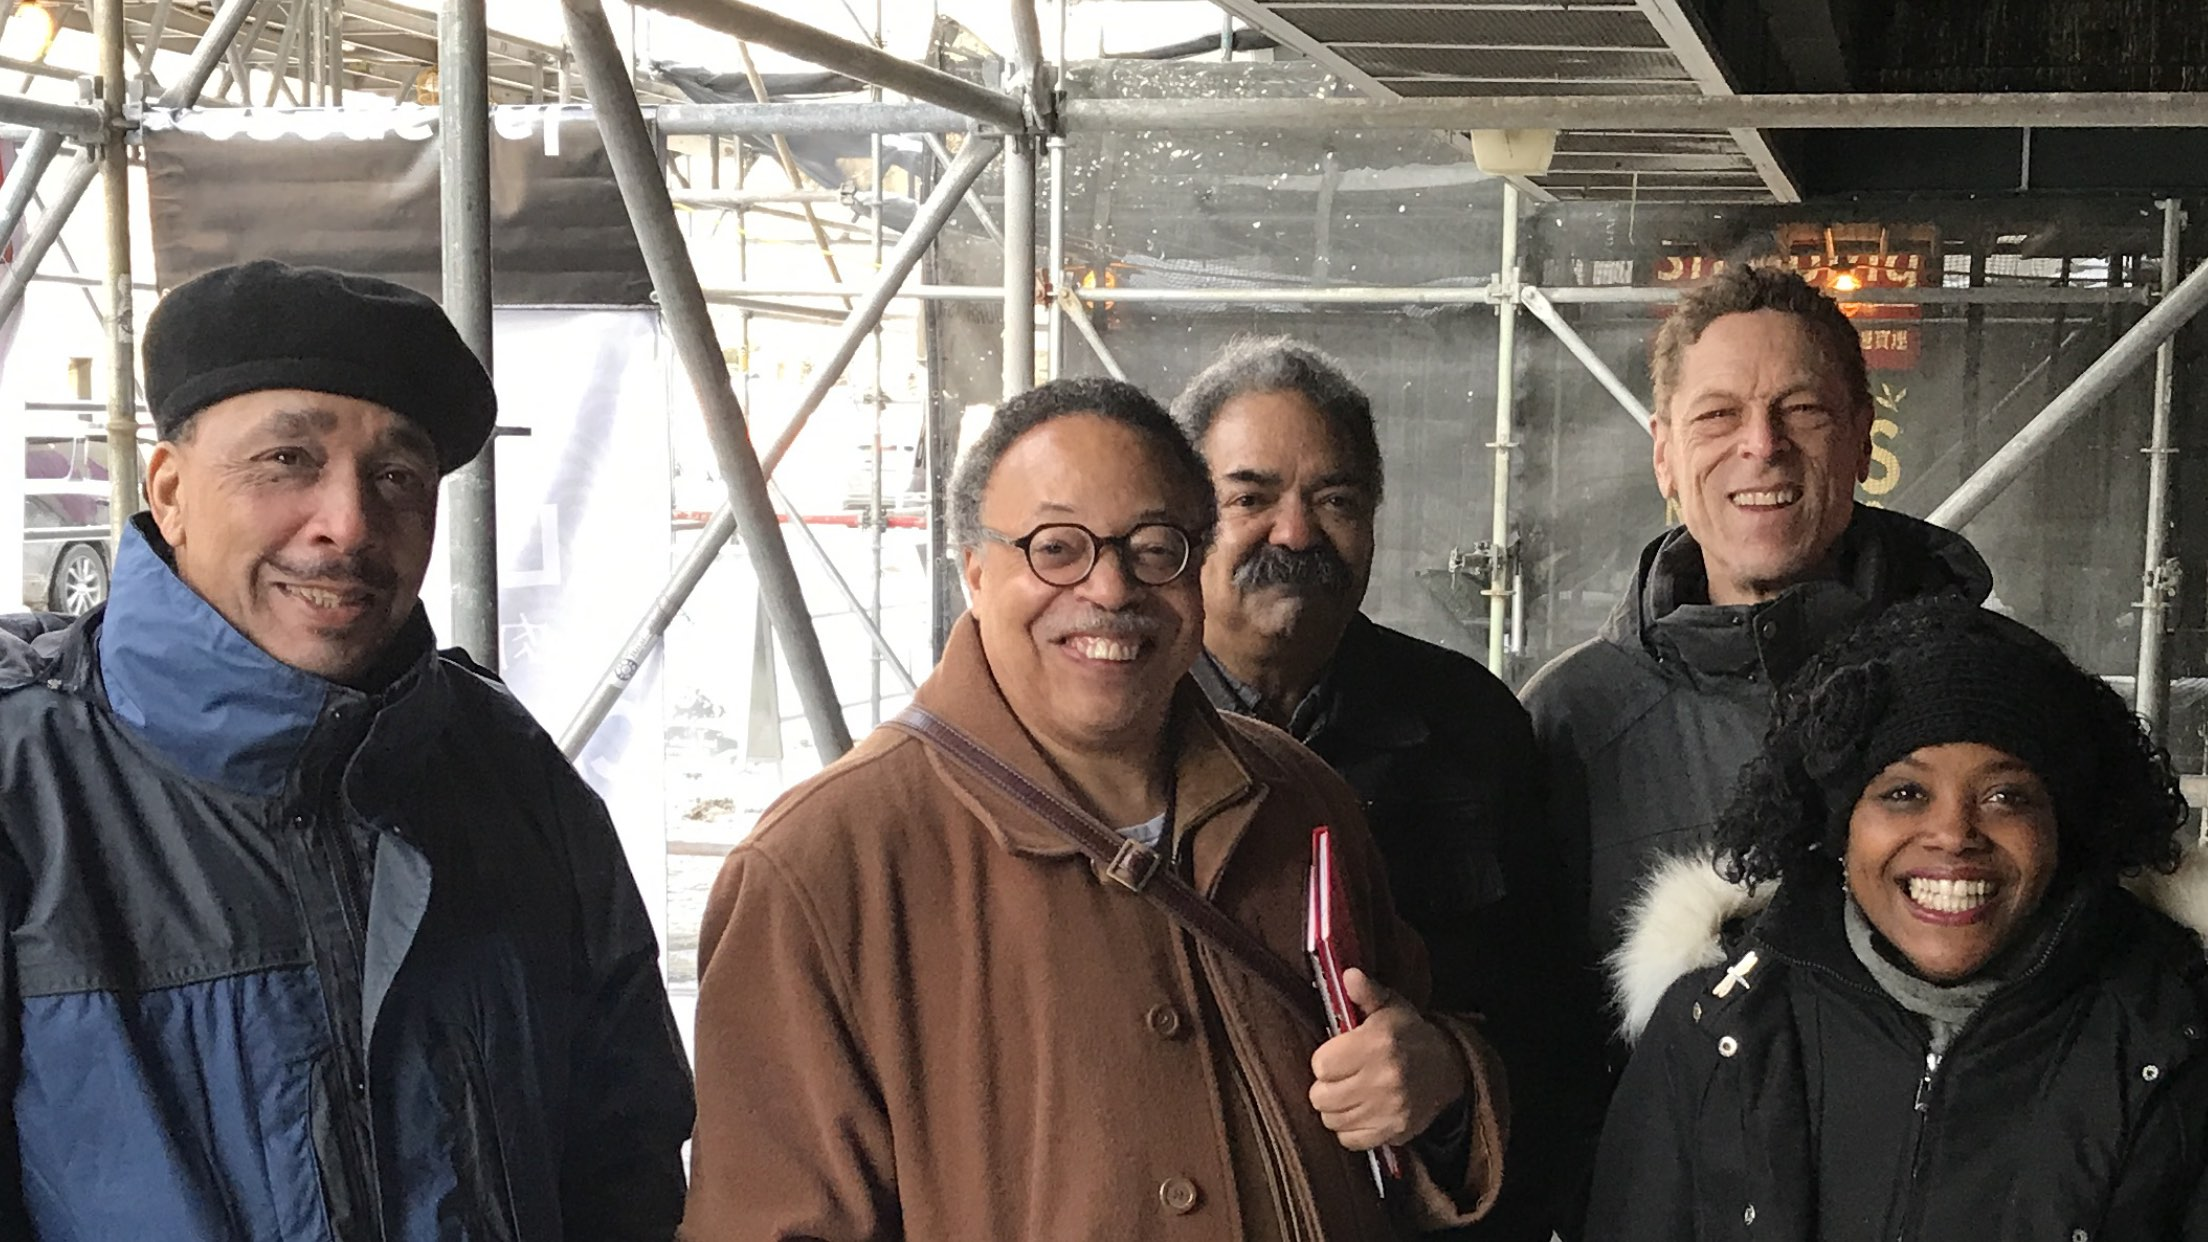 Birth of the Afro-Metis Nation: Sugar Plums Croxen, GEC, Russ Kelley, Chris White, and Shelley Hamilton. Toronto, December 2017.